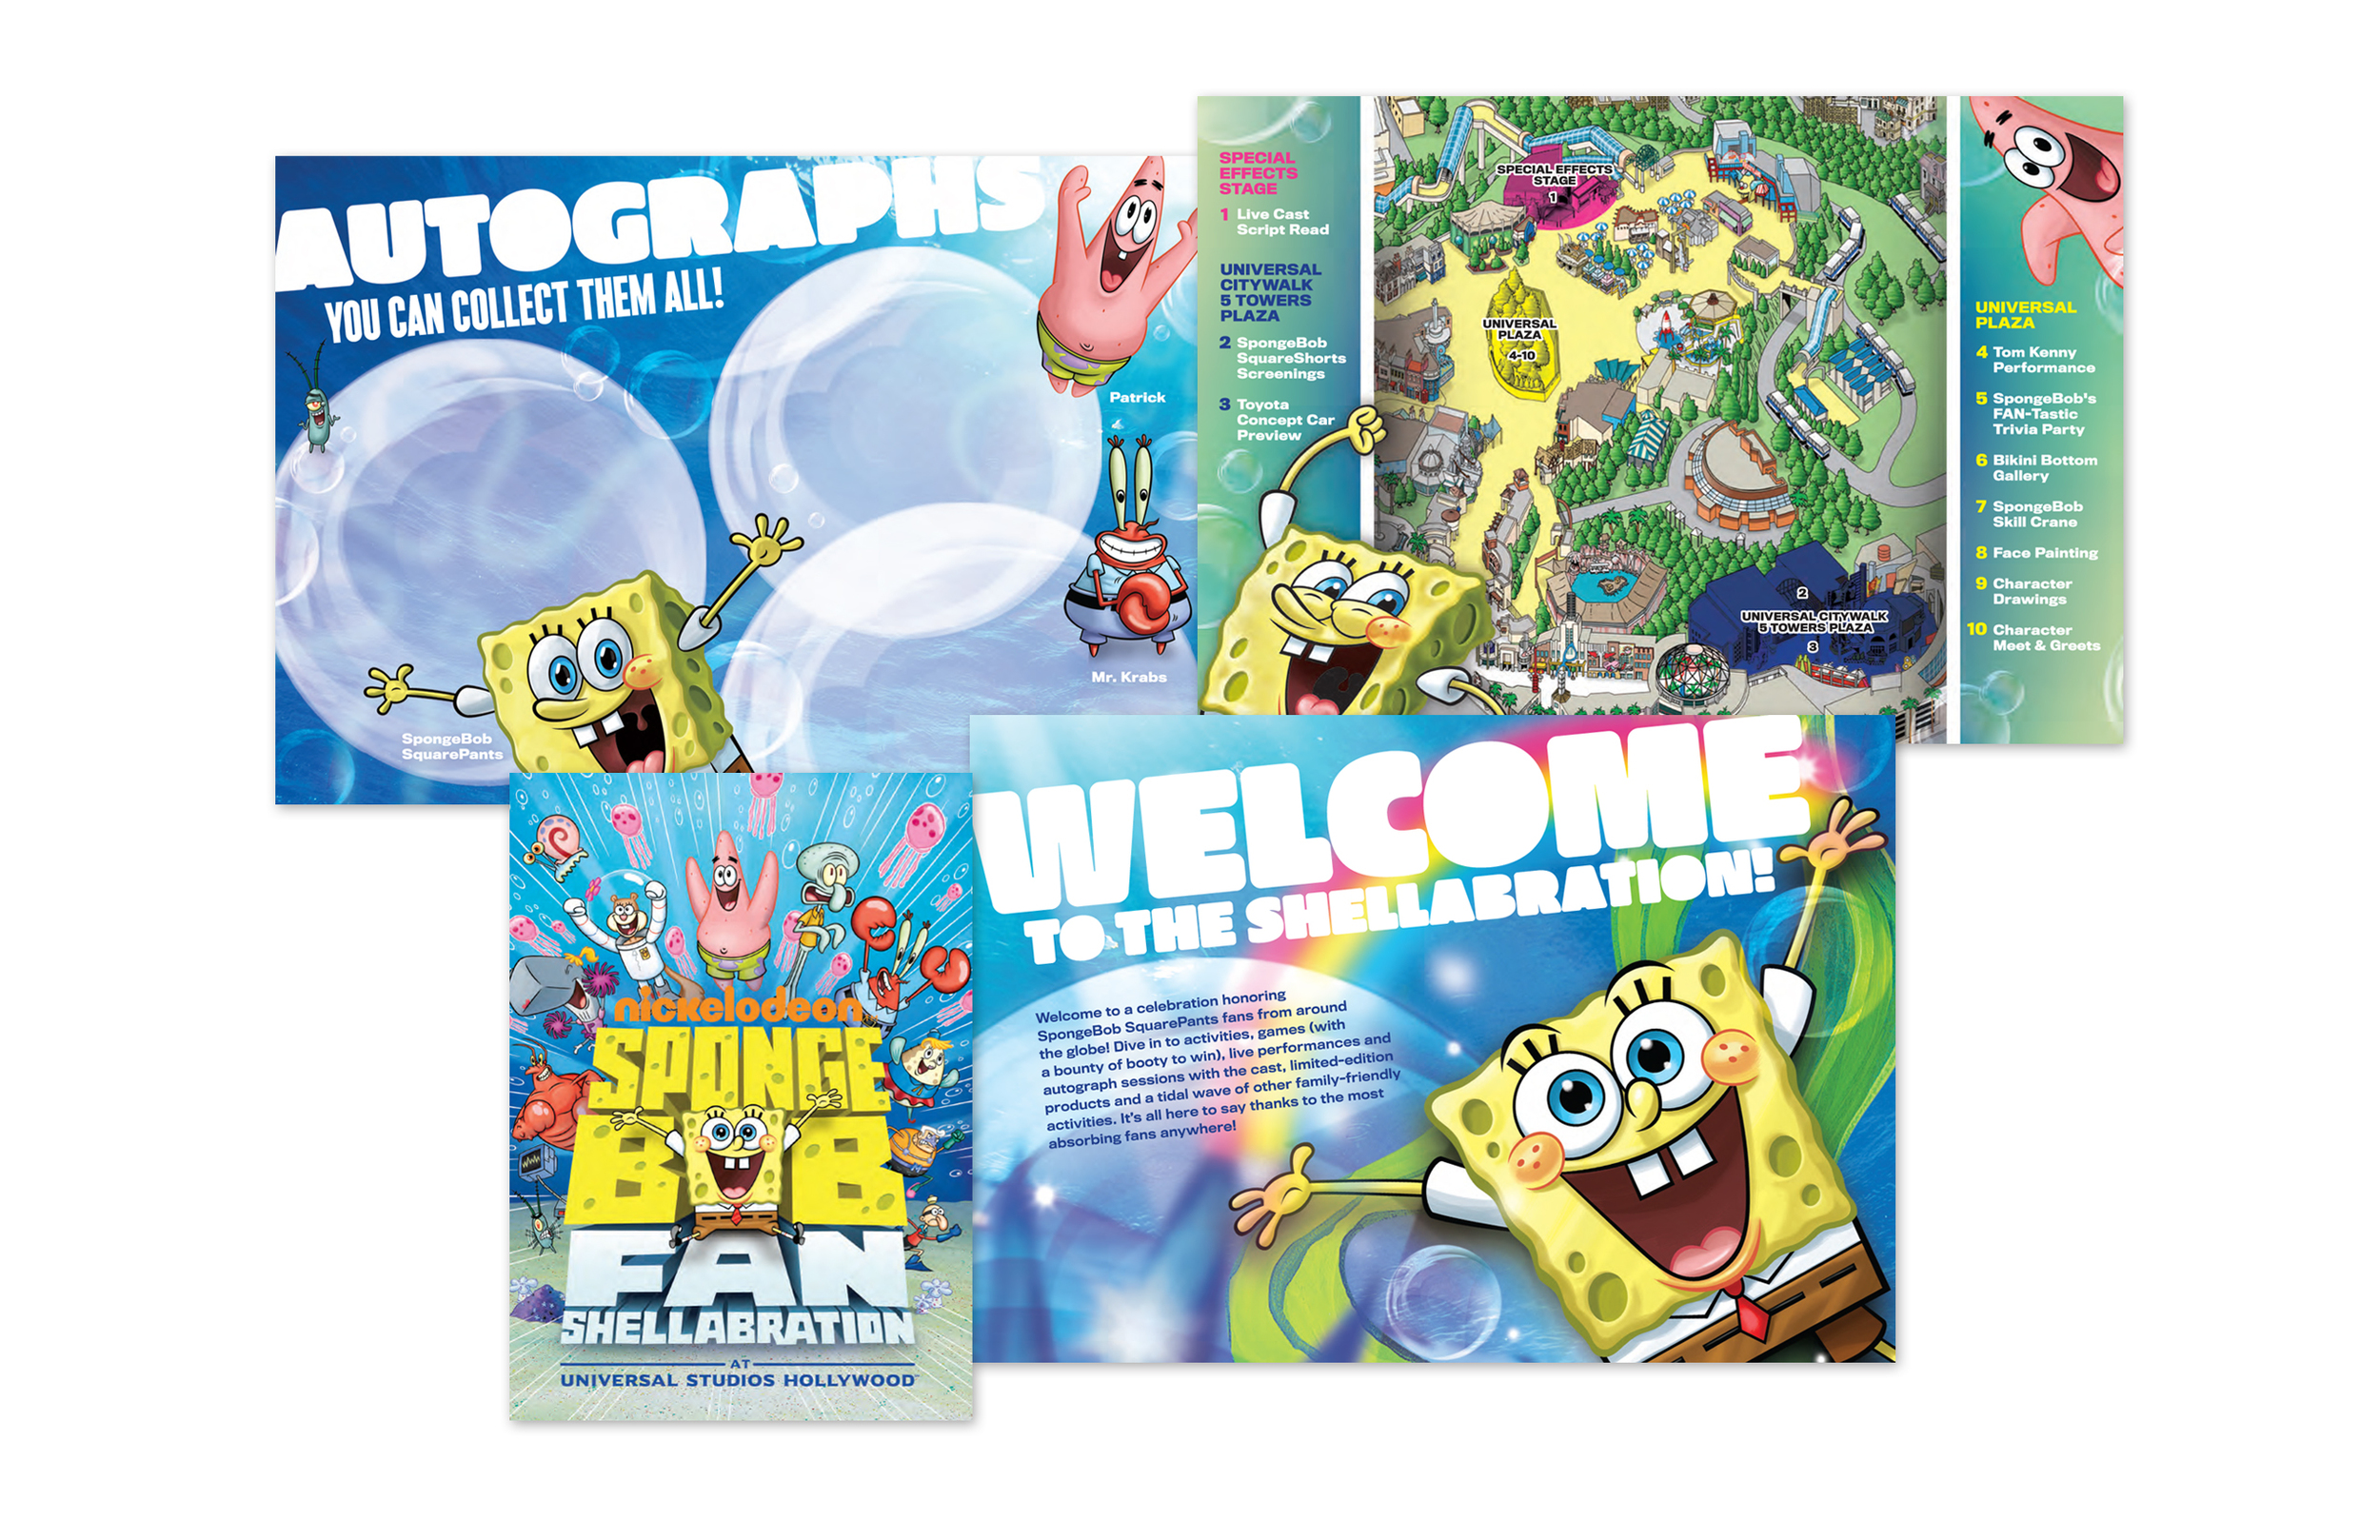 Passport Booklet for SpongeBob SquarePants Shellabration event at Universal Studios